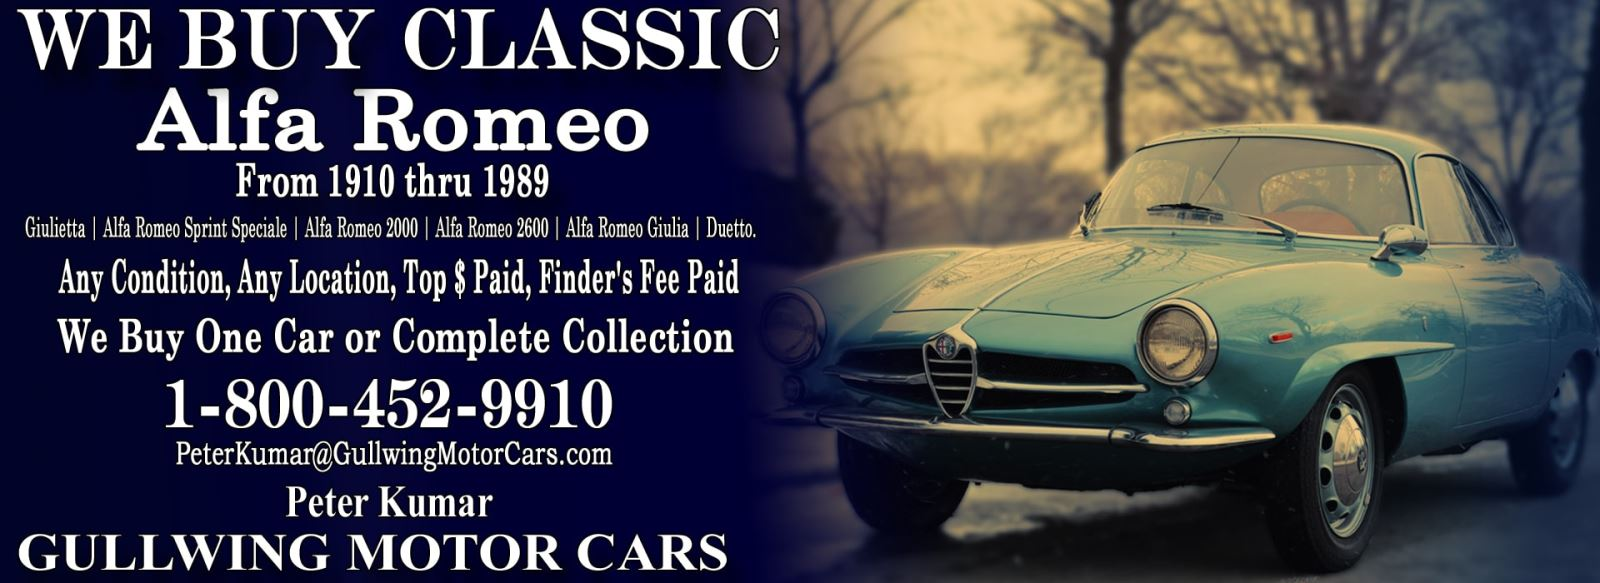 Classic Alfa Romeo for sale, we buy vintage Alfa Romeo. Call Peter Kumar. Gullwing Motor